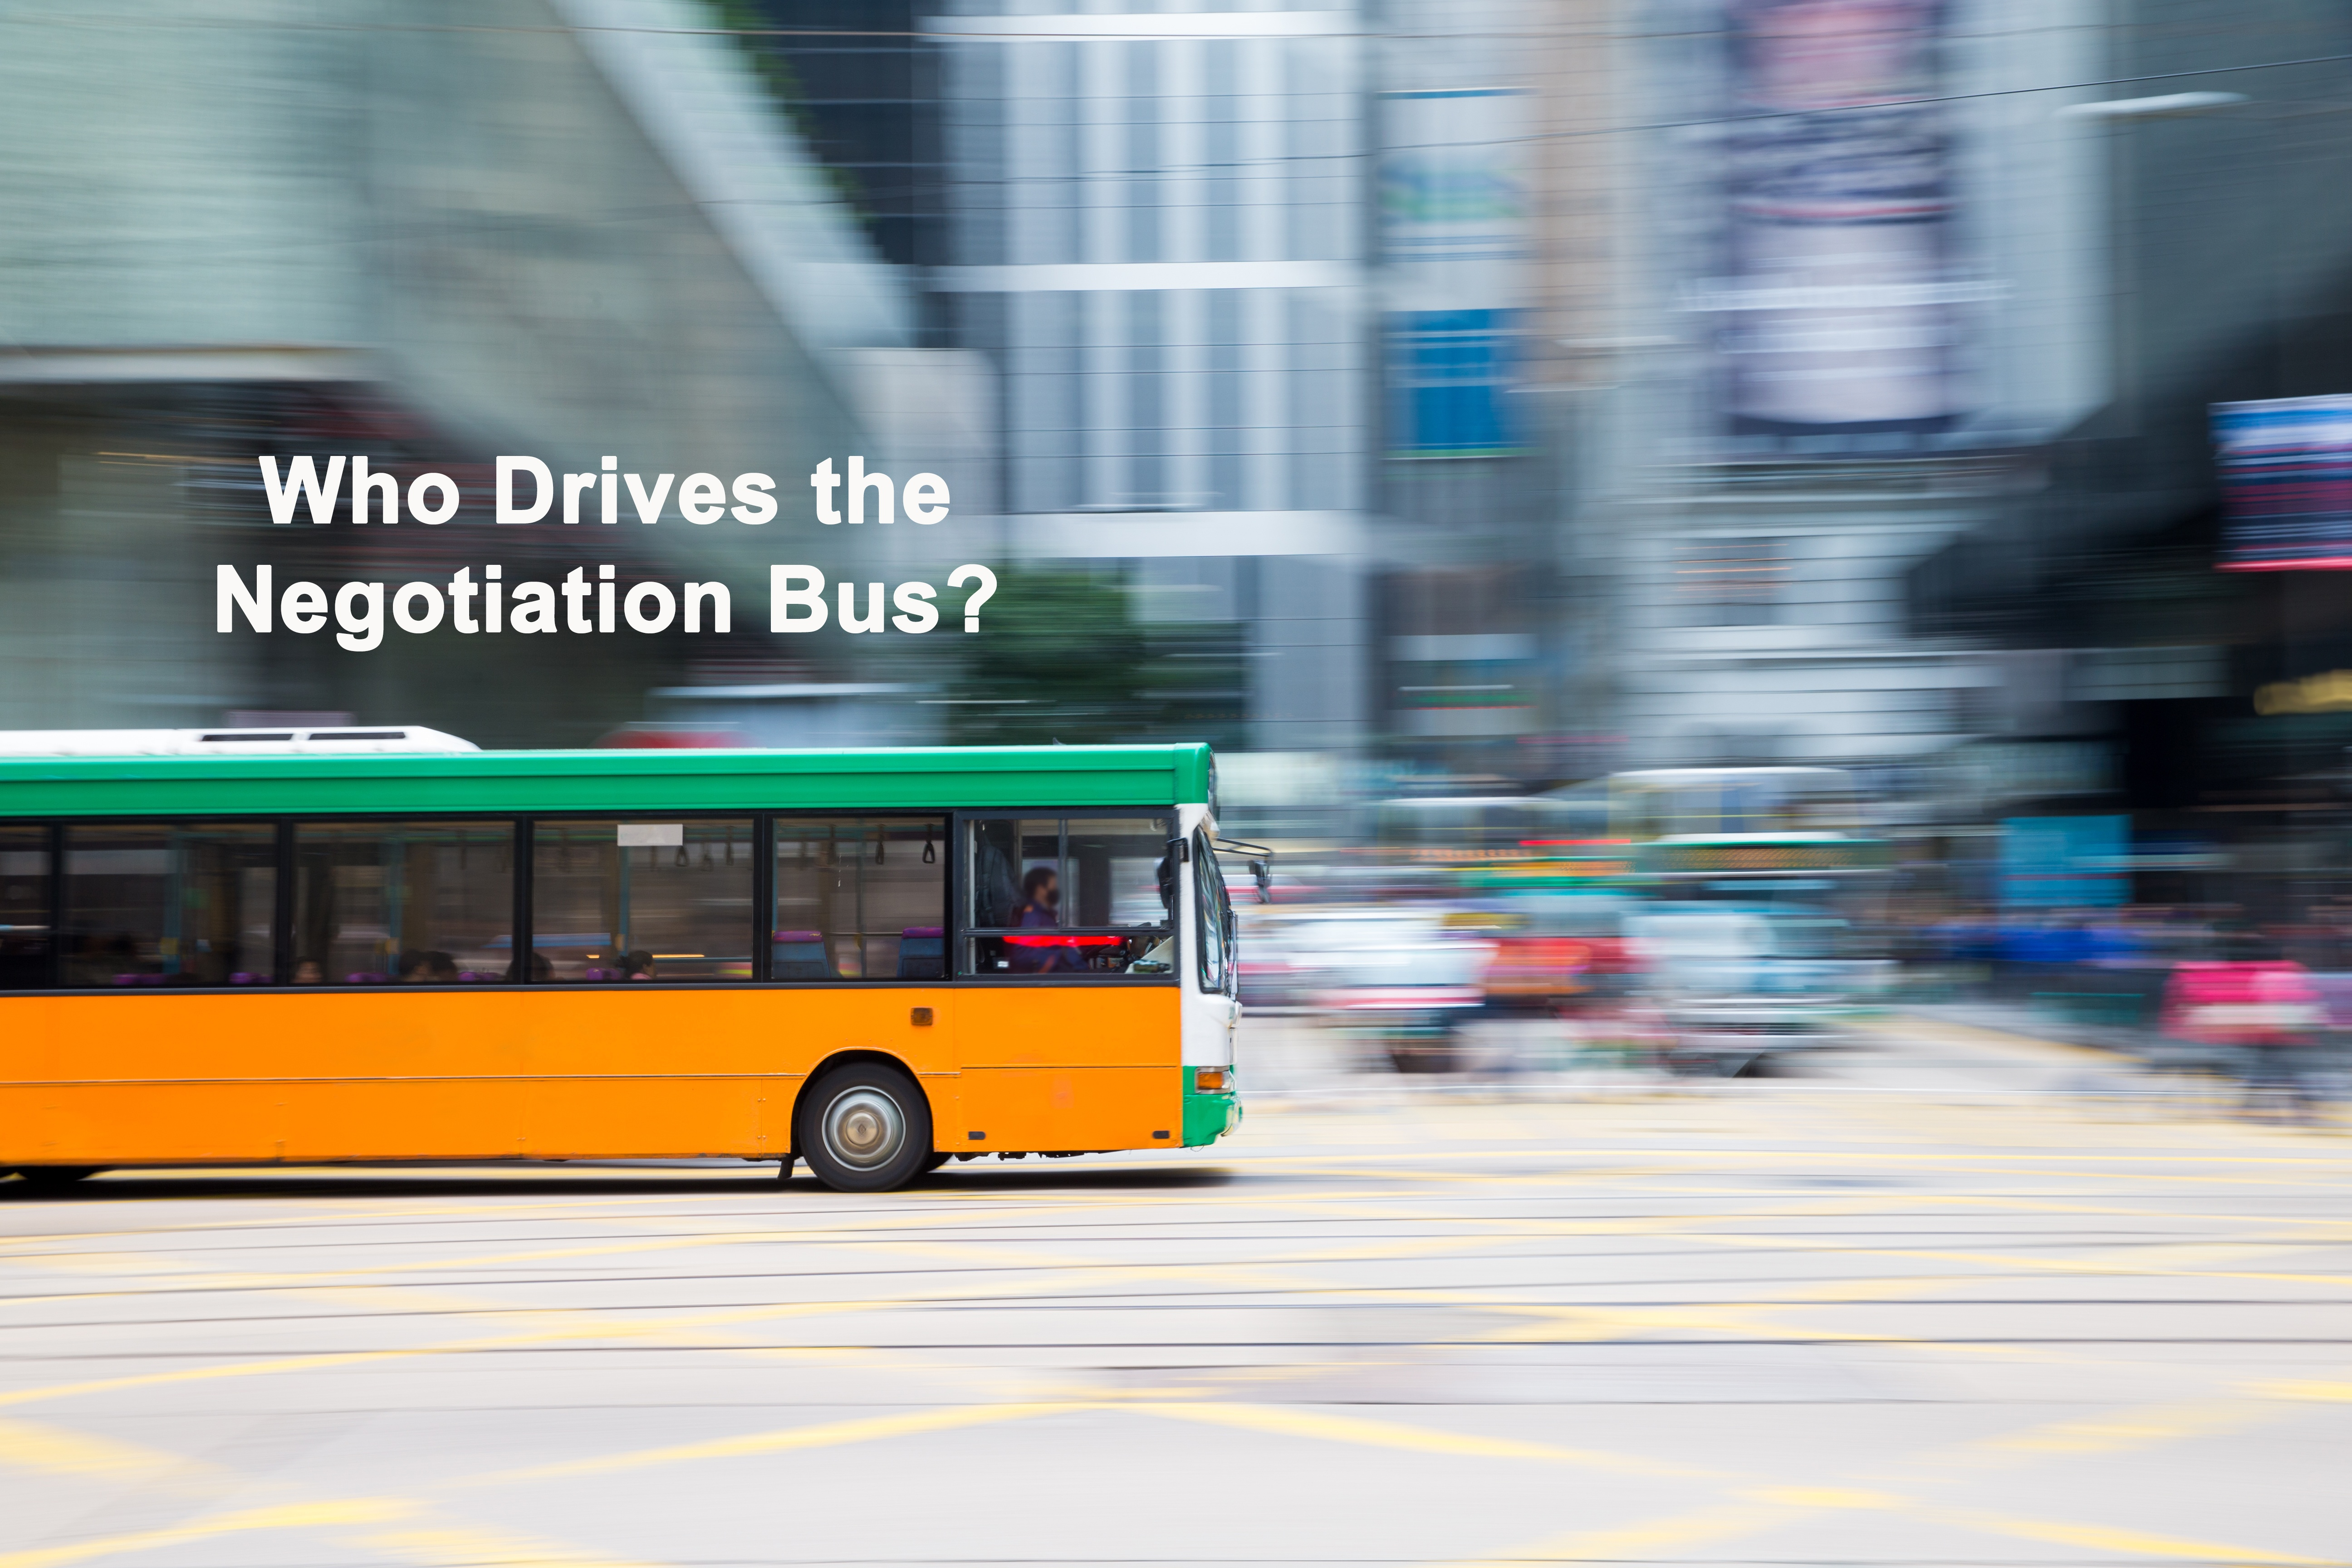 who drives the negotiation bus